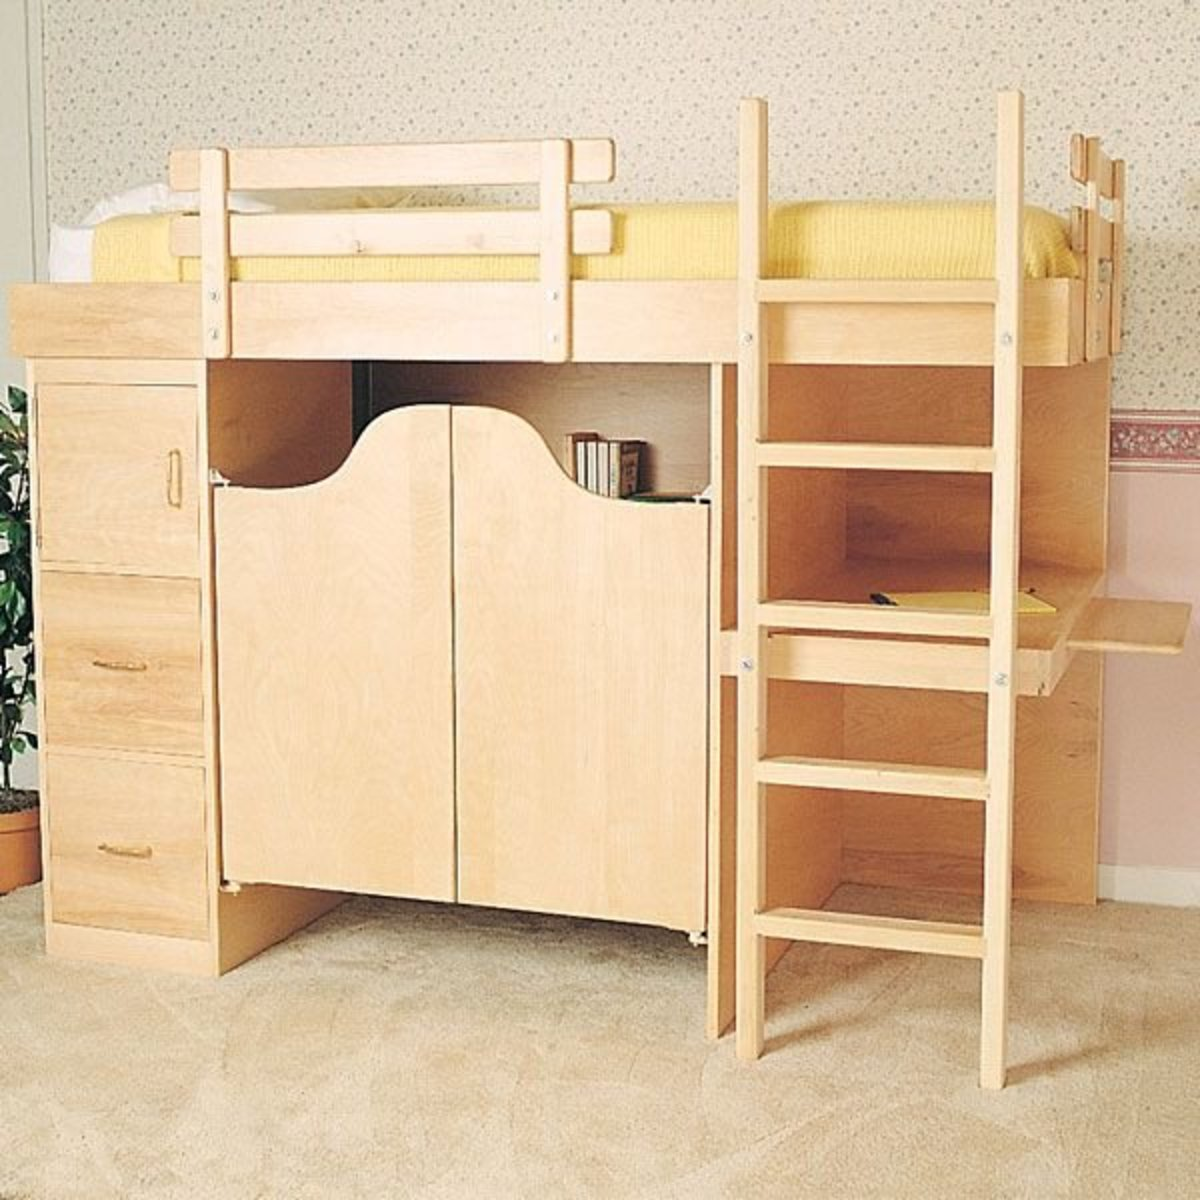 U Bild Woodworking Project Paper Plan To Build 3 In 1 Bunk Bed